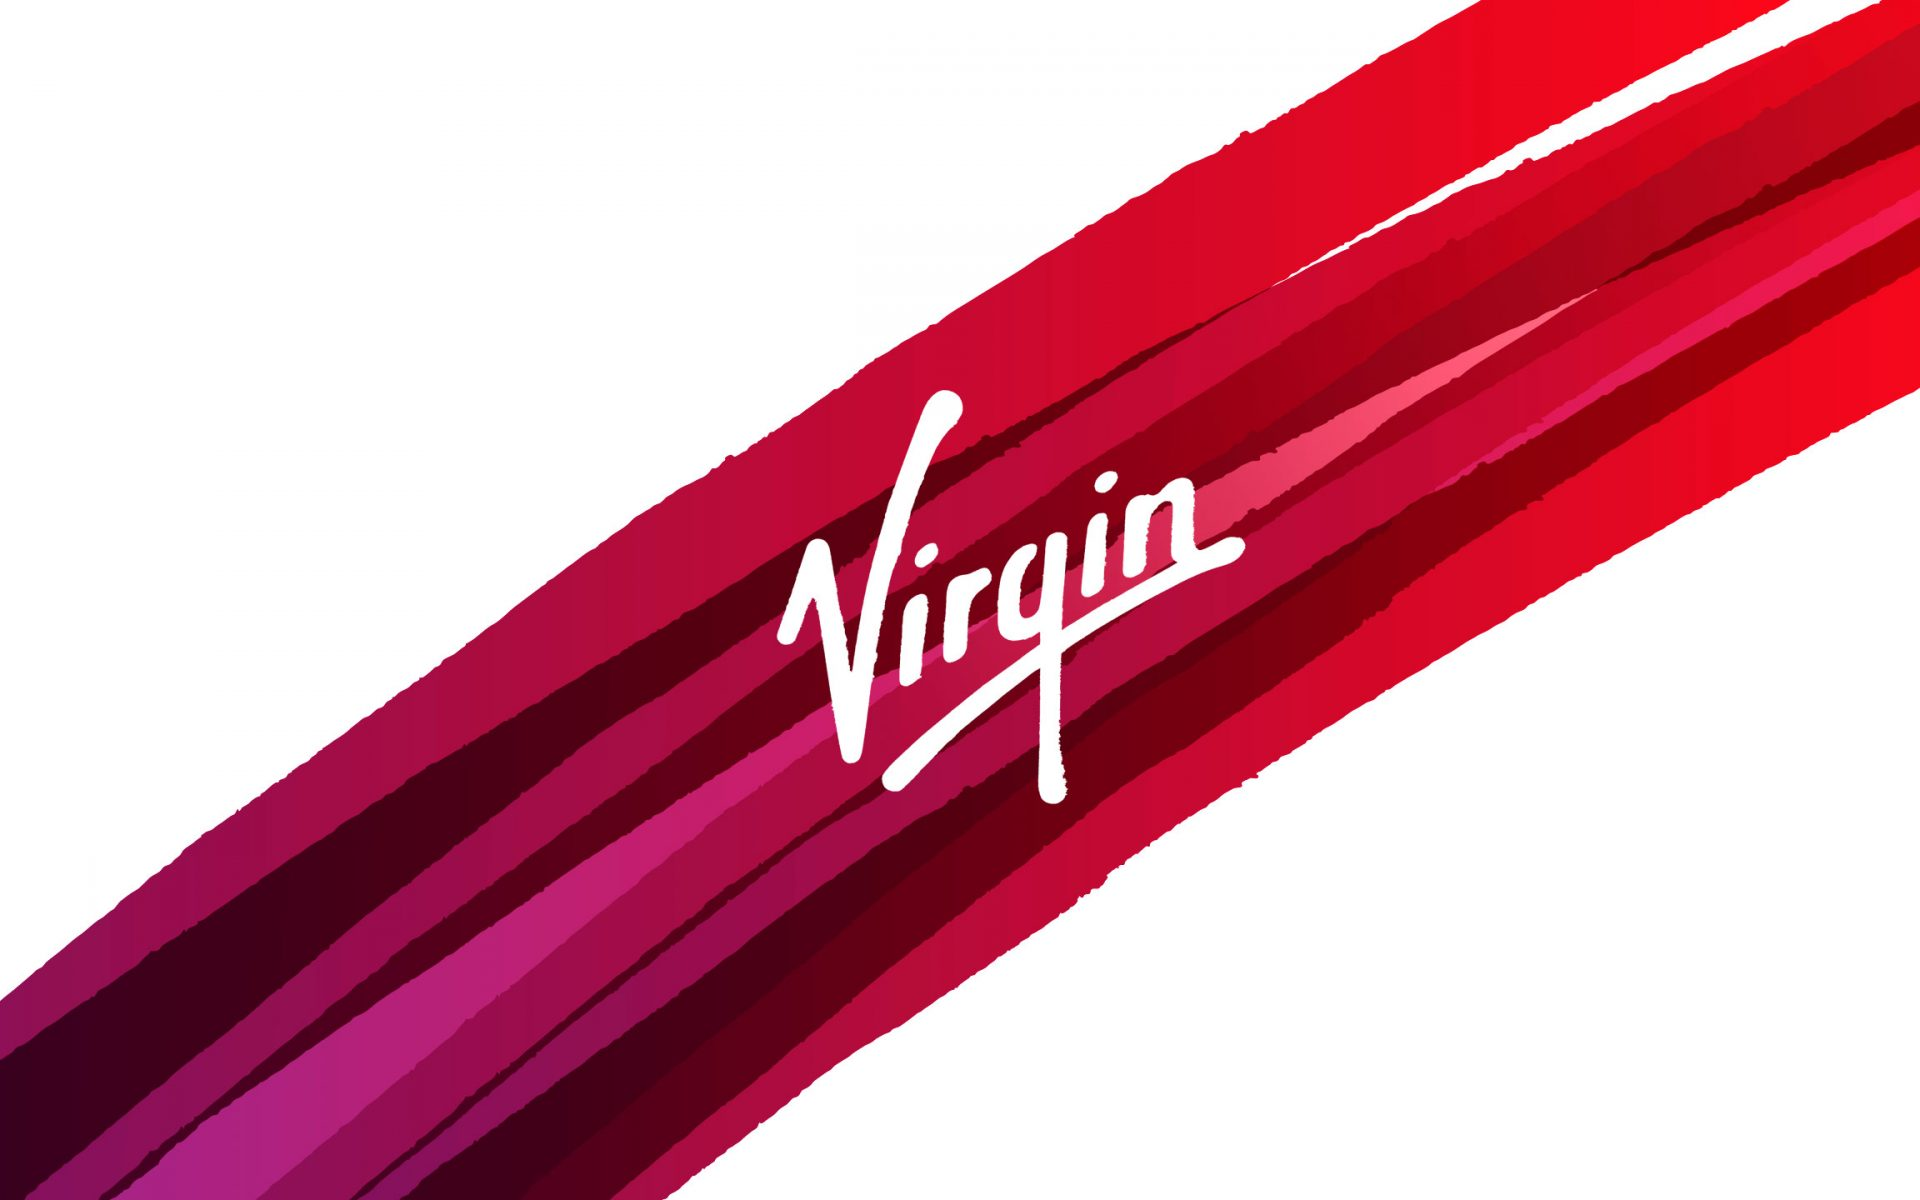 Cool Virgin Company Logo Wallpaper PaperPull 1920x1200